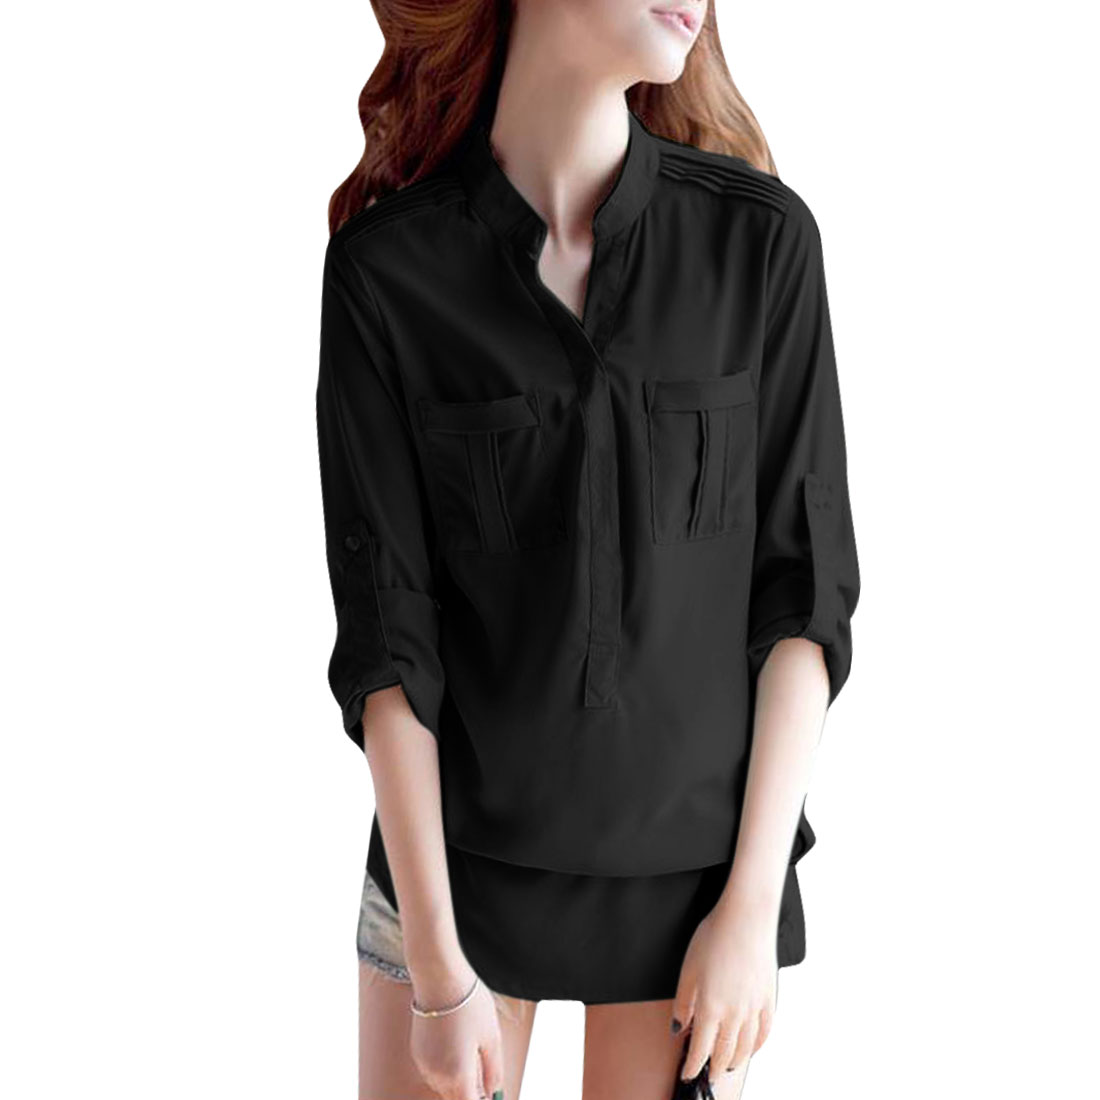 Lady Long Sleeve Pockets Buttoned Cuff Tops Shirts Black S